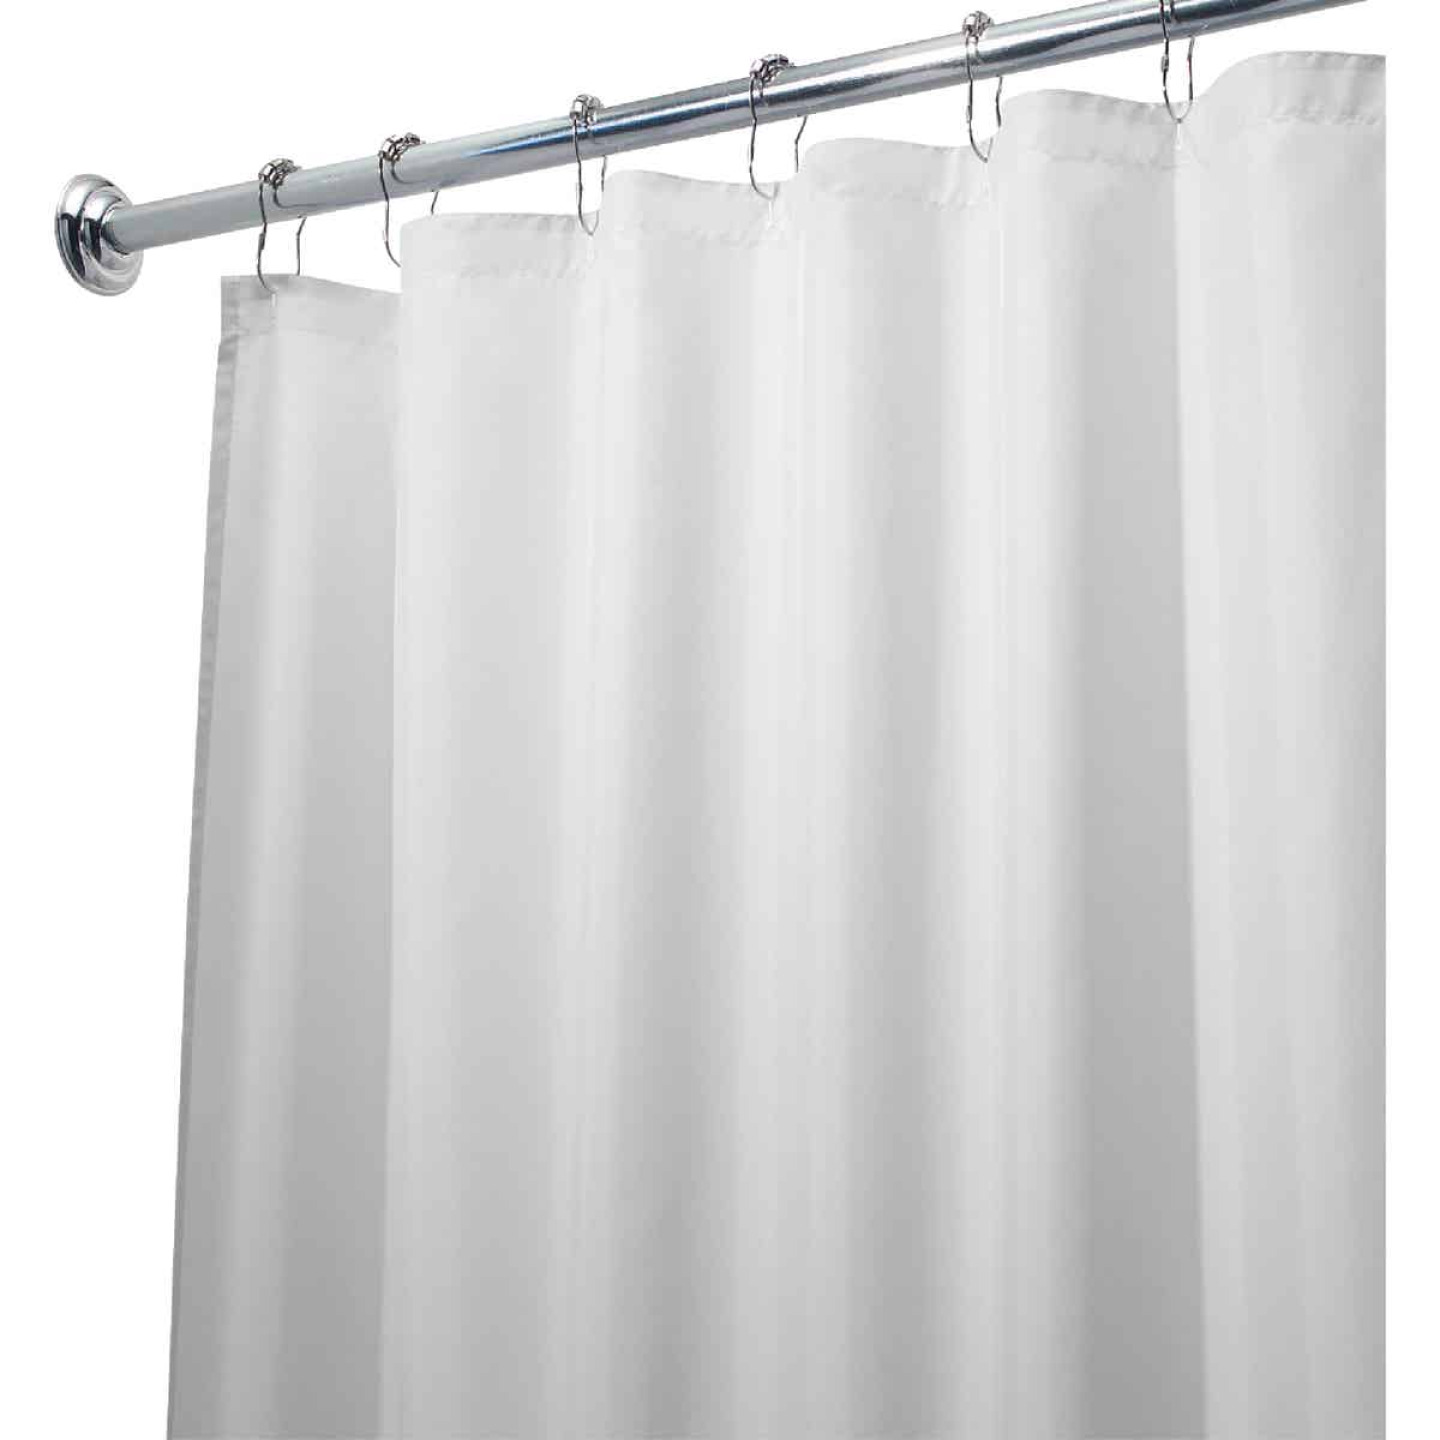 InterDesign 72 In. x 72 In. White Polyester Shower Curtain Liner Image 3